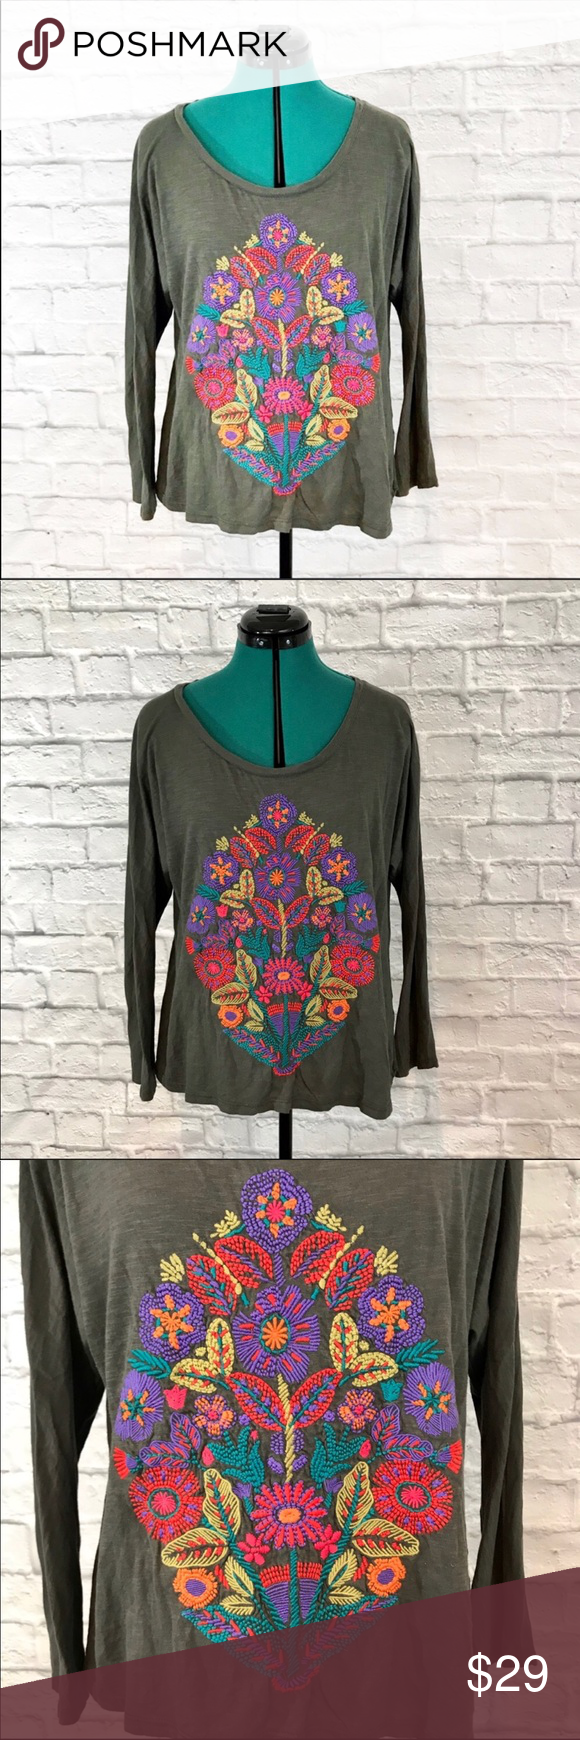 cb68181bae0 Lucky Brand Scoop Neck Floral Embroidered Tee EUC. Measurements (laid flat  and inches